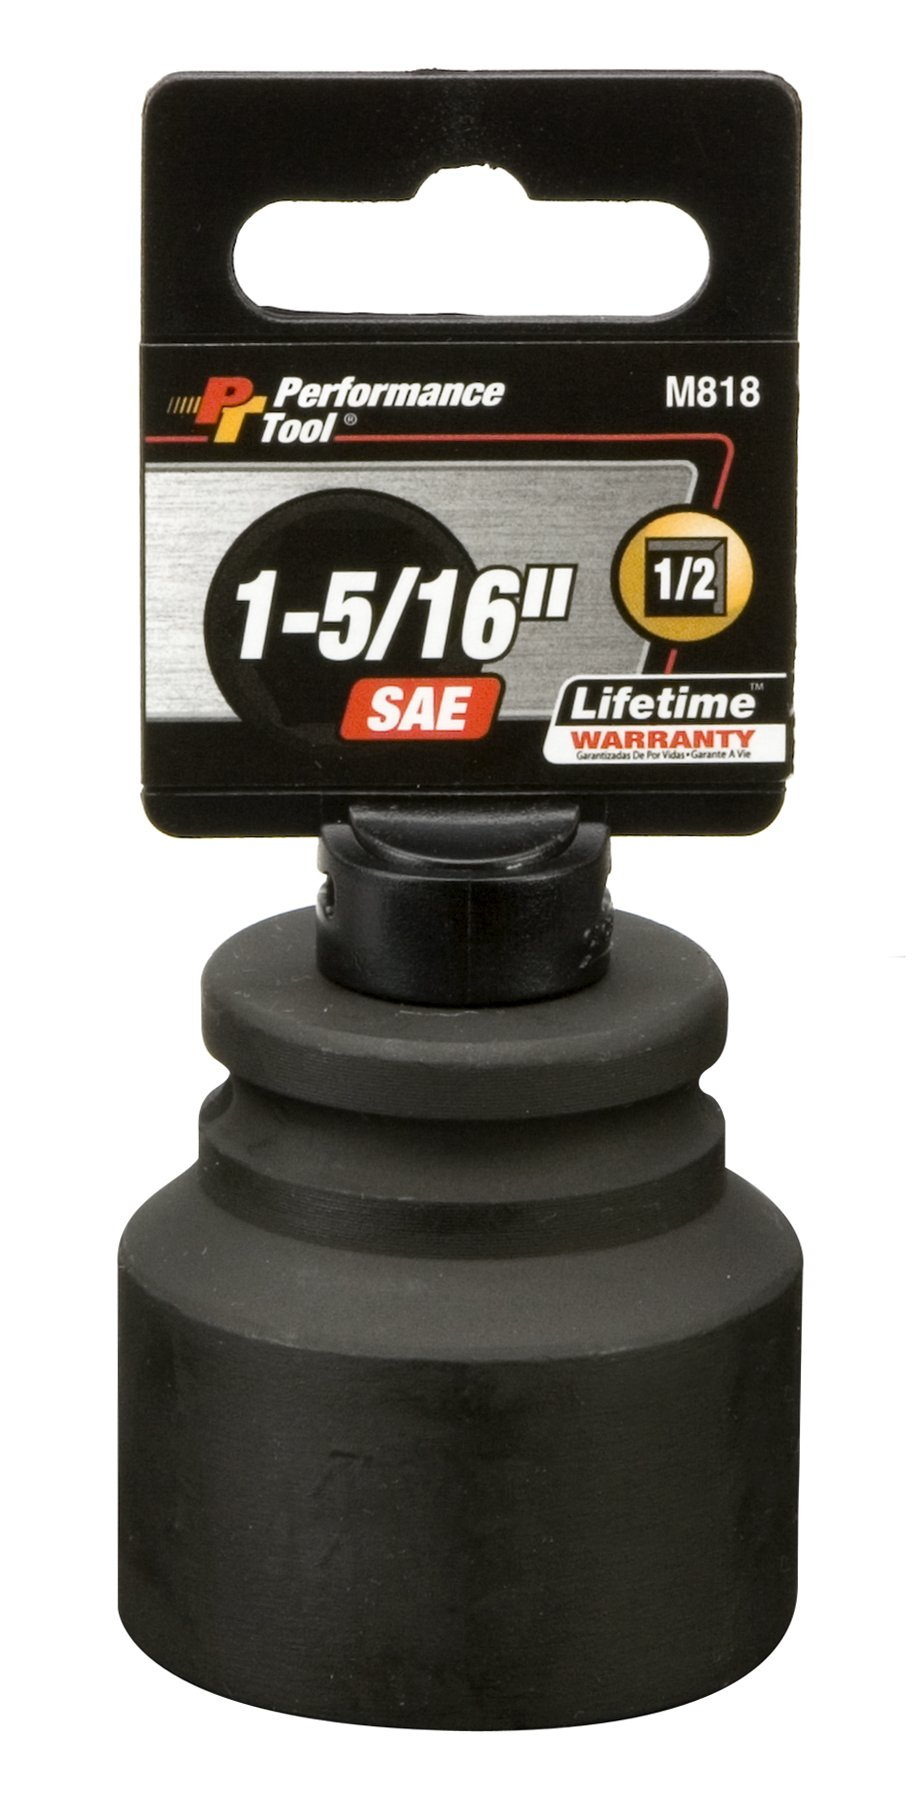 Performance Tool M818 1/2'' Dr. 1-5/16'' Impact Socket by Performance Tool